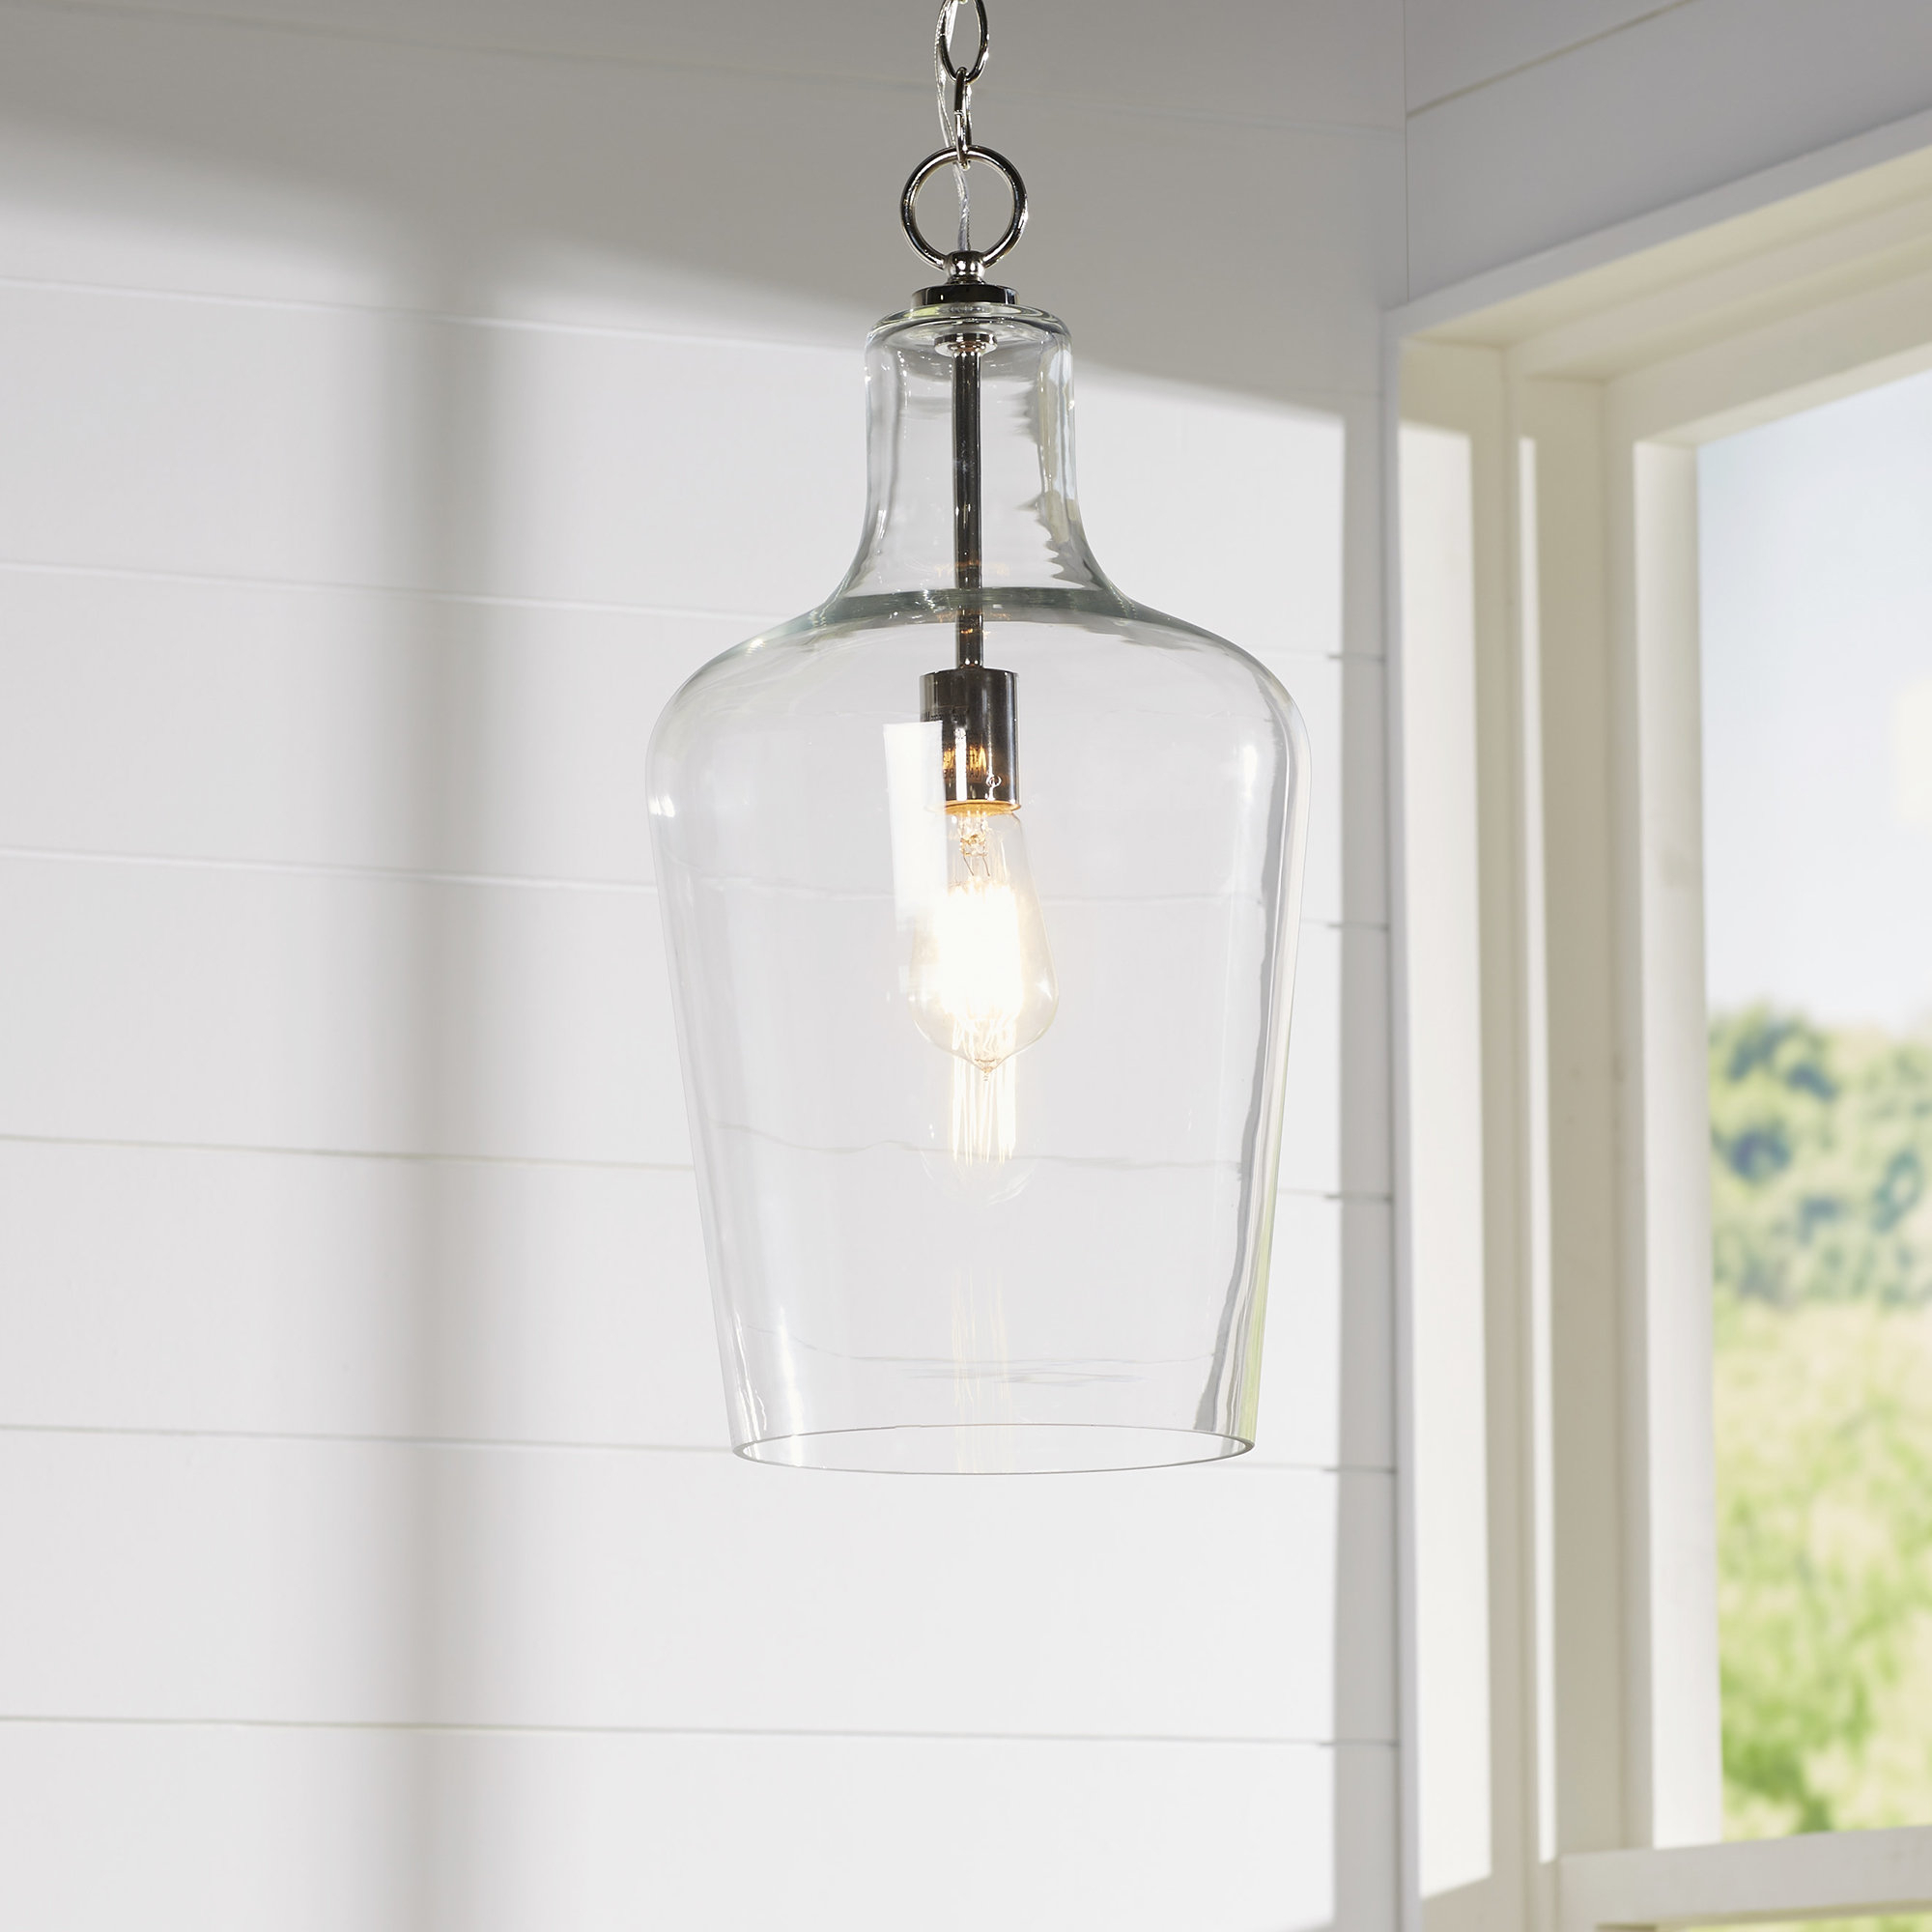 Carey 1 Light Single Bell Pendant In Most Recent Carey 1 Light Single Bell Pendants (View 3 of 25)